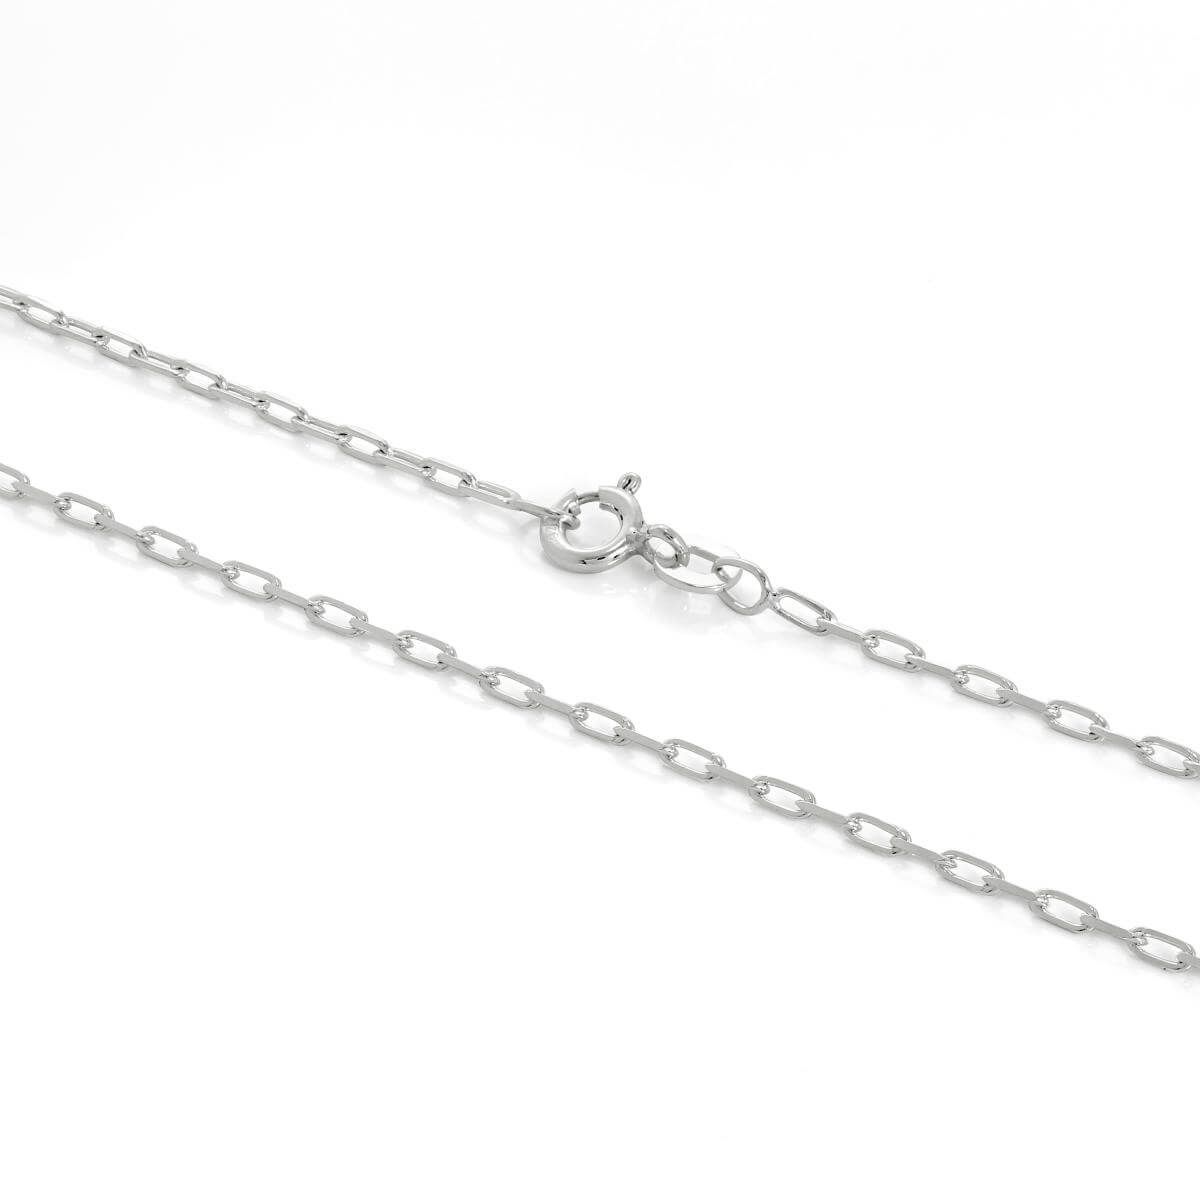 Sterling Silver 2mm Long Link Cable Chain 16 - 24 Inches